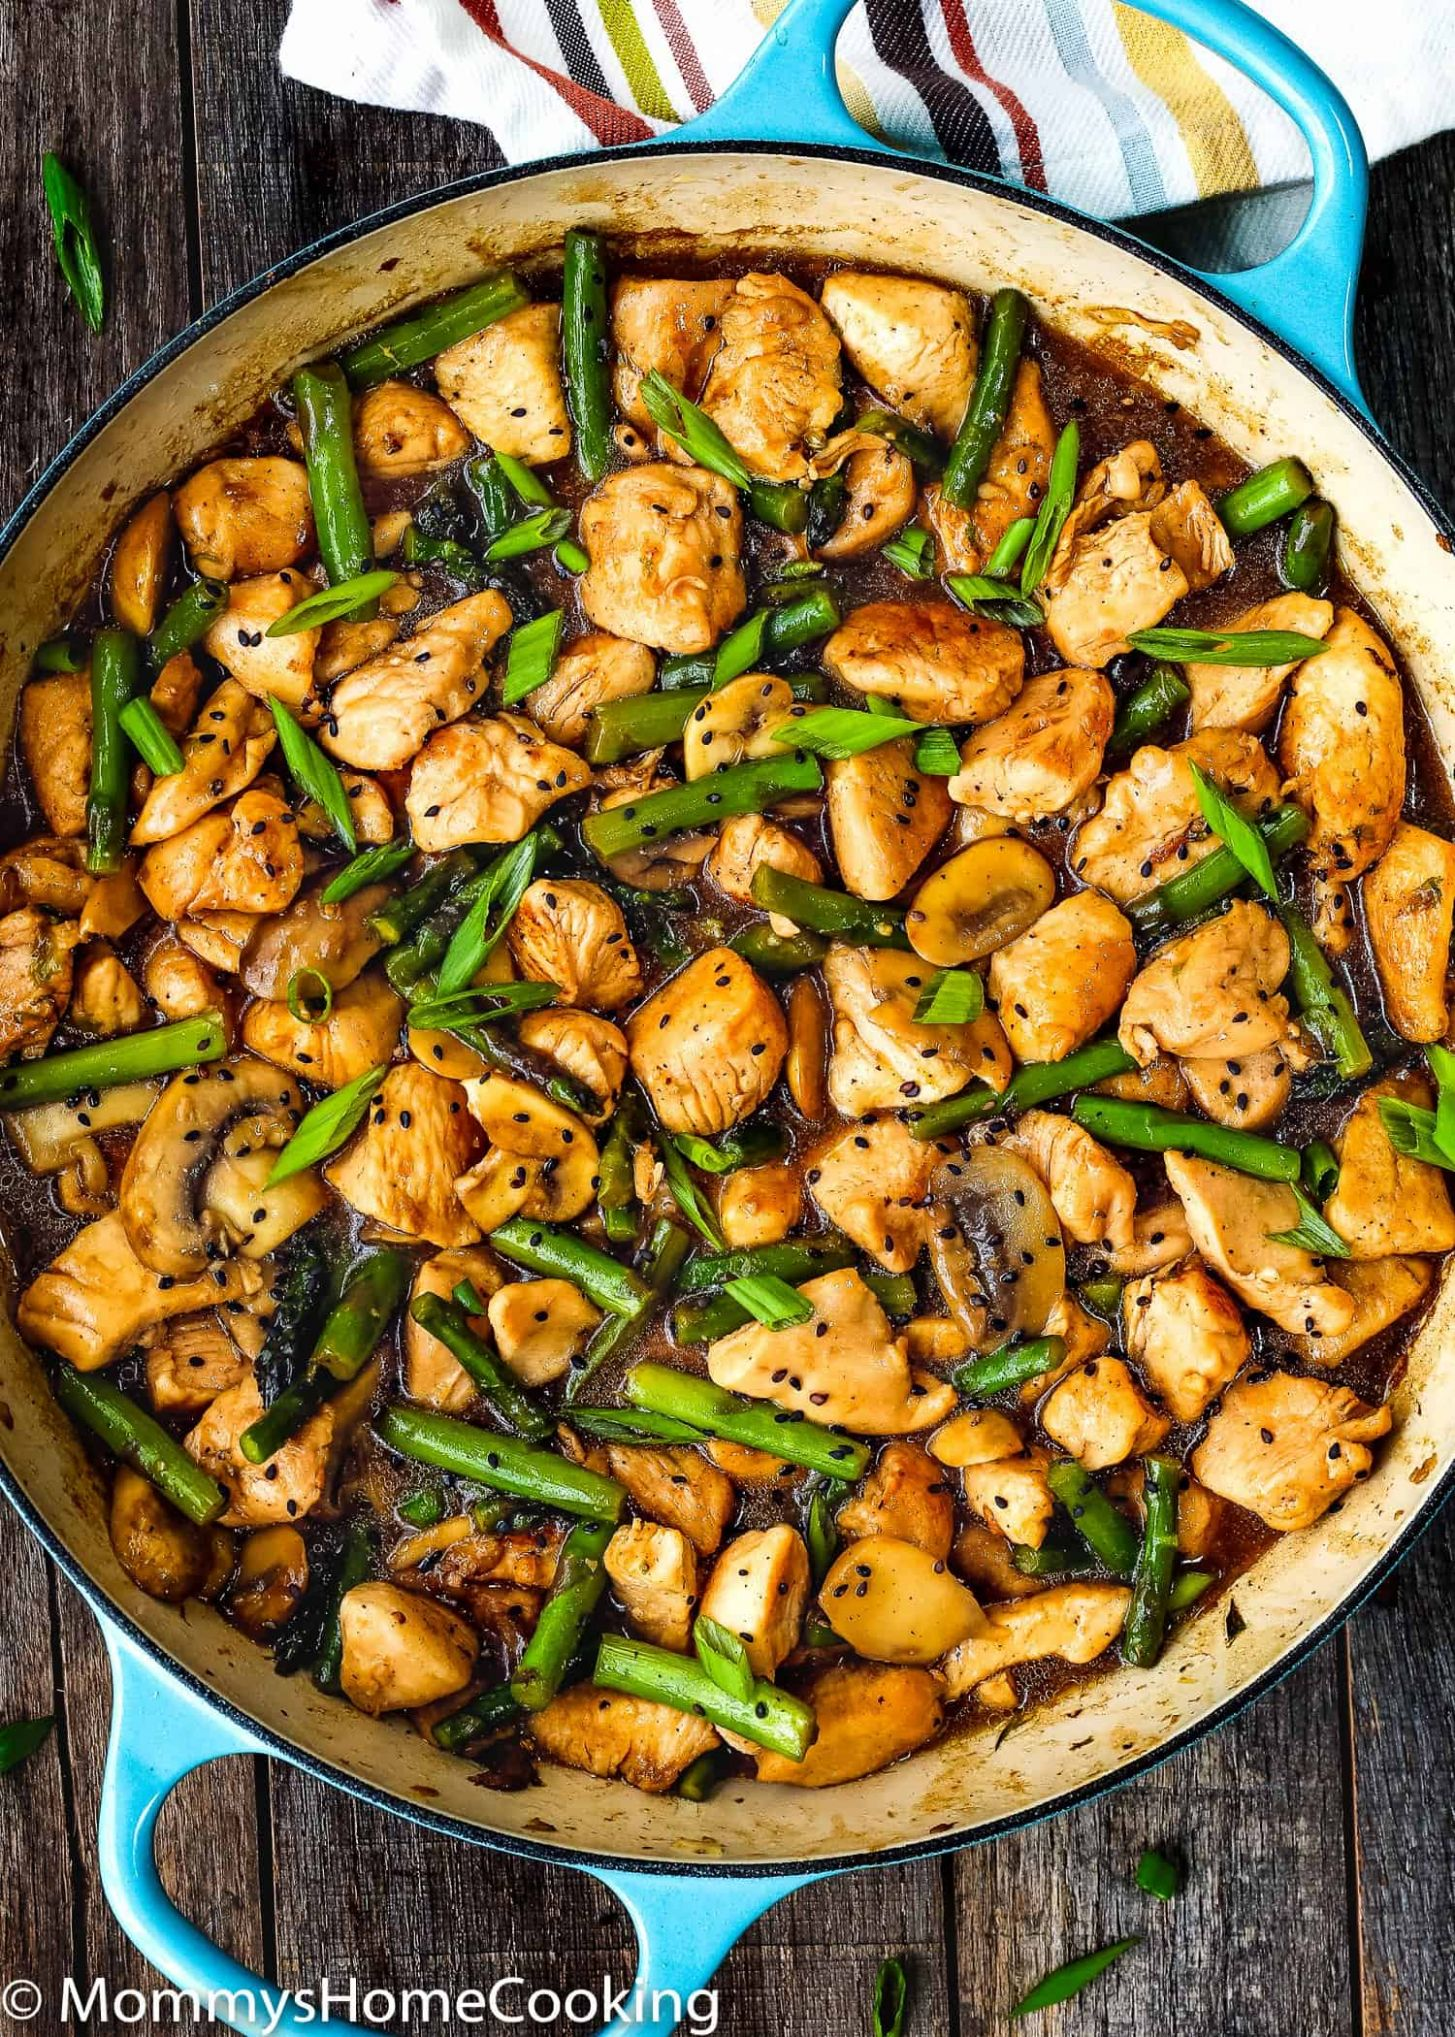 Easy Healthy Chicken and Asparagus Skillet - Easy Recipes With Chicken